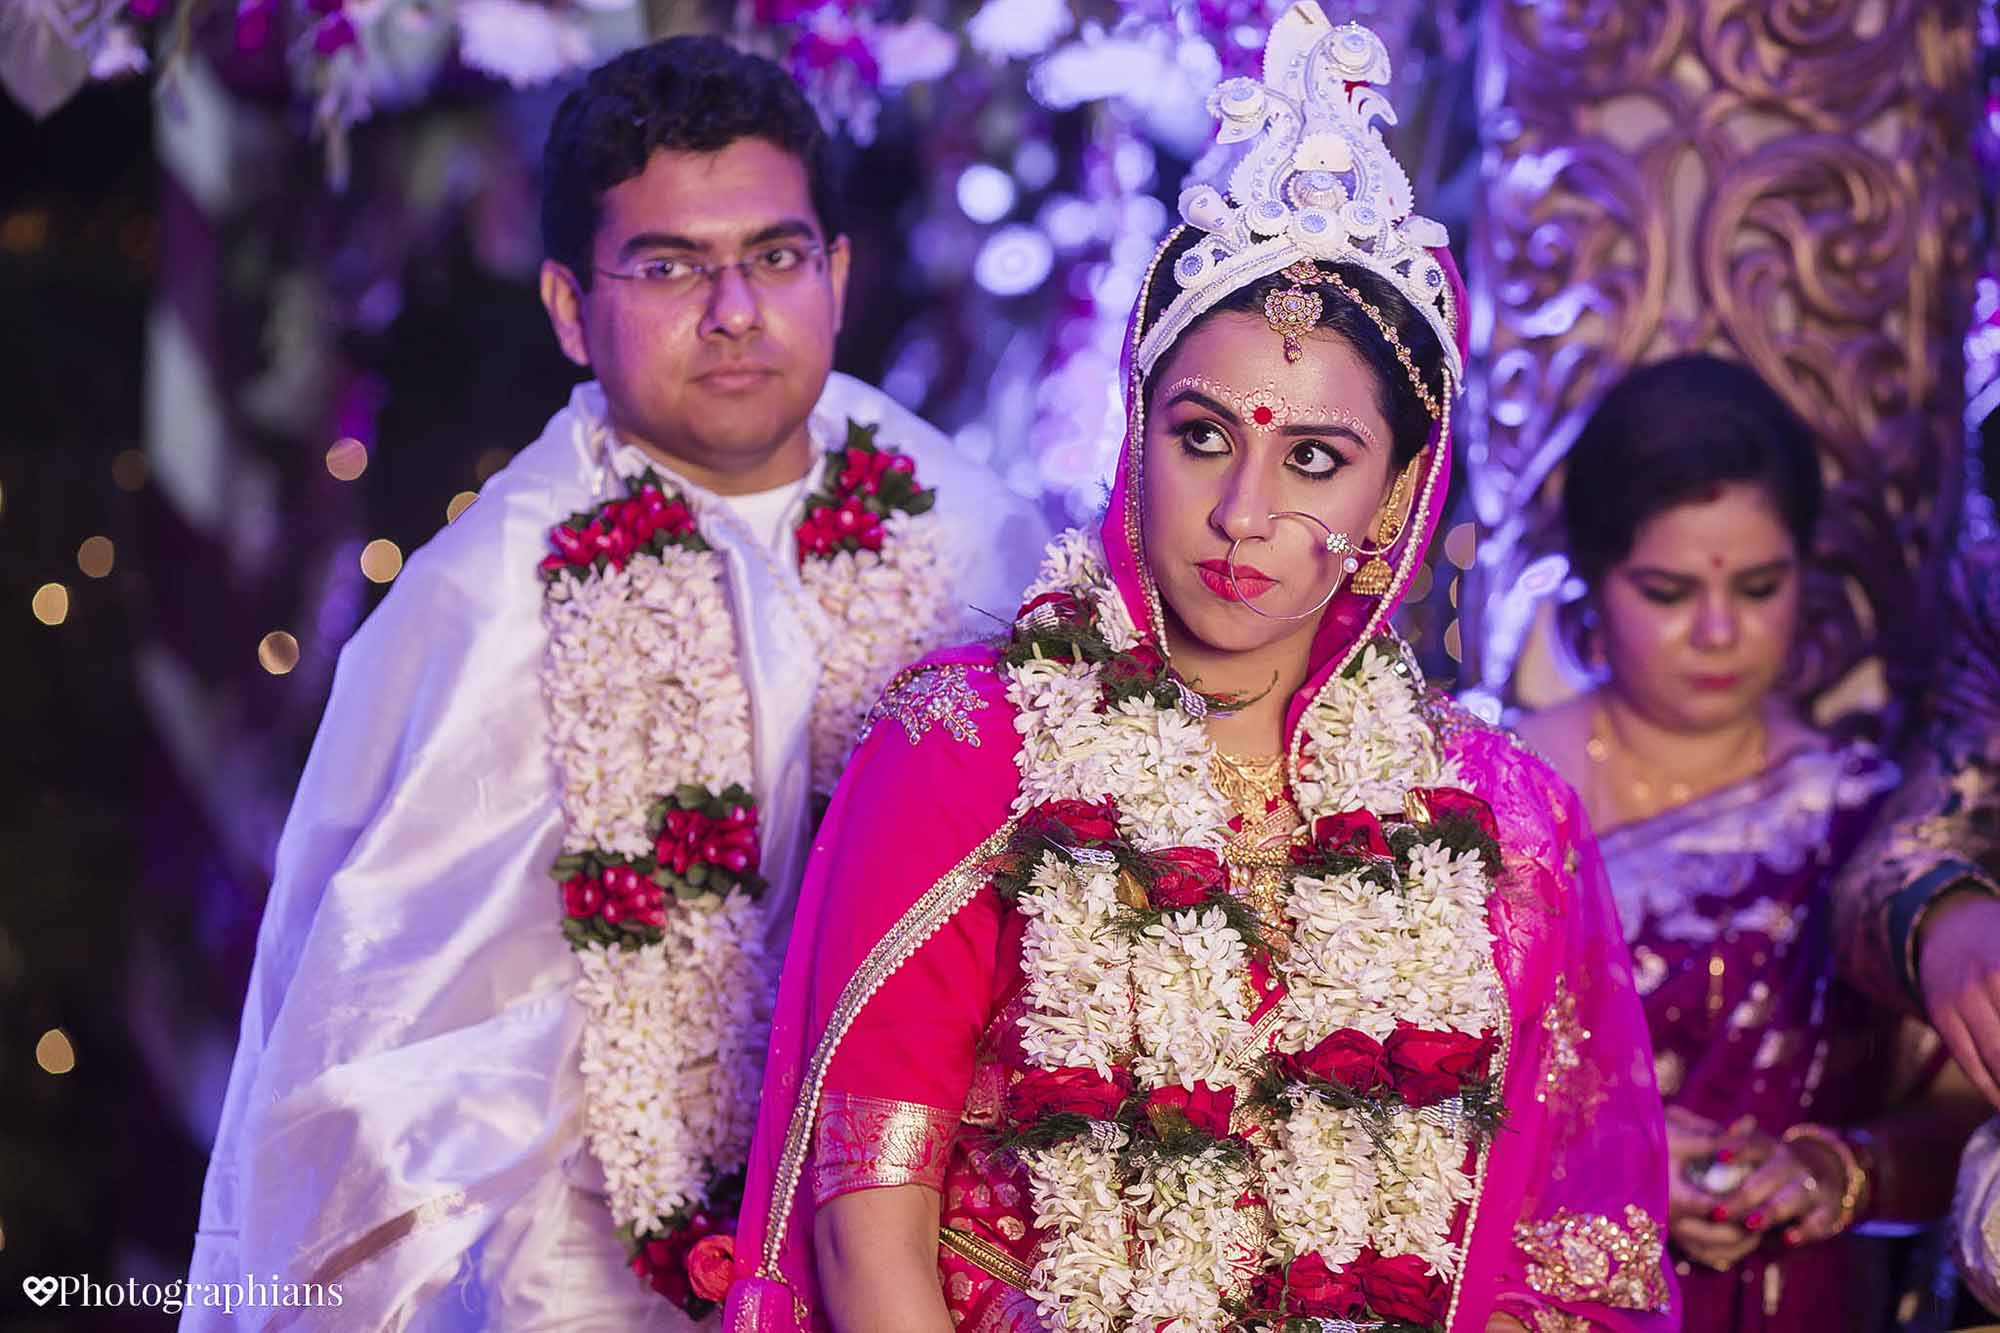 Bengali_Wedding_Photography_Kolkata_Photographians_143